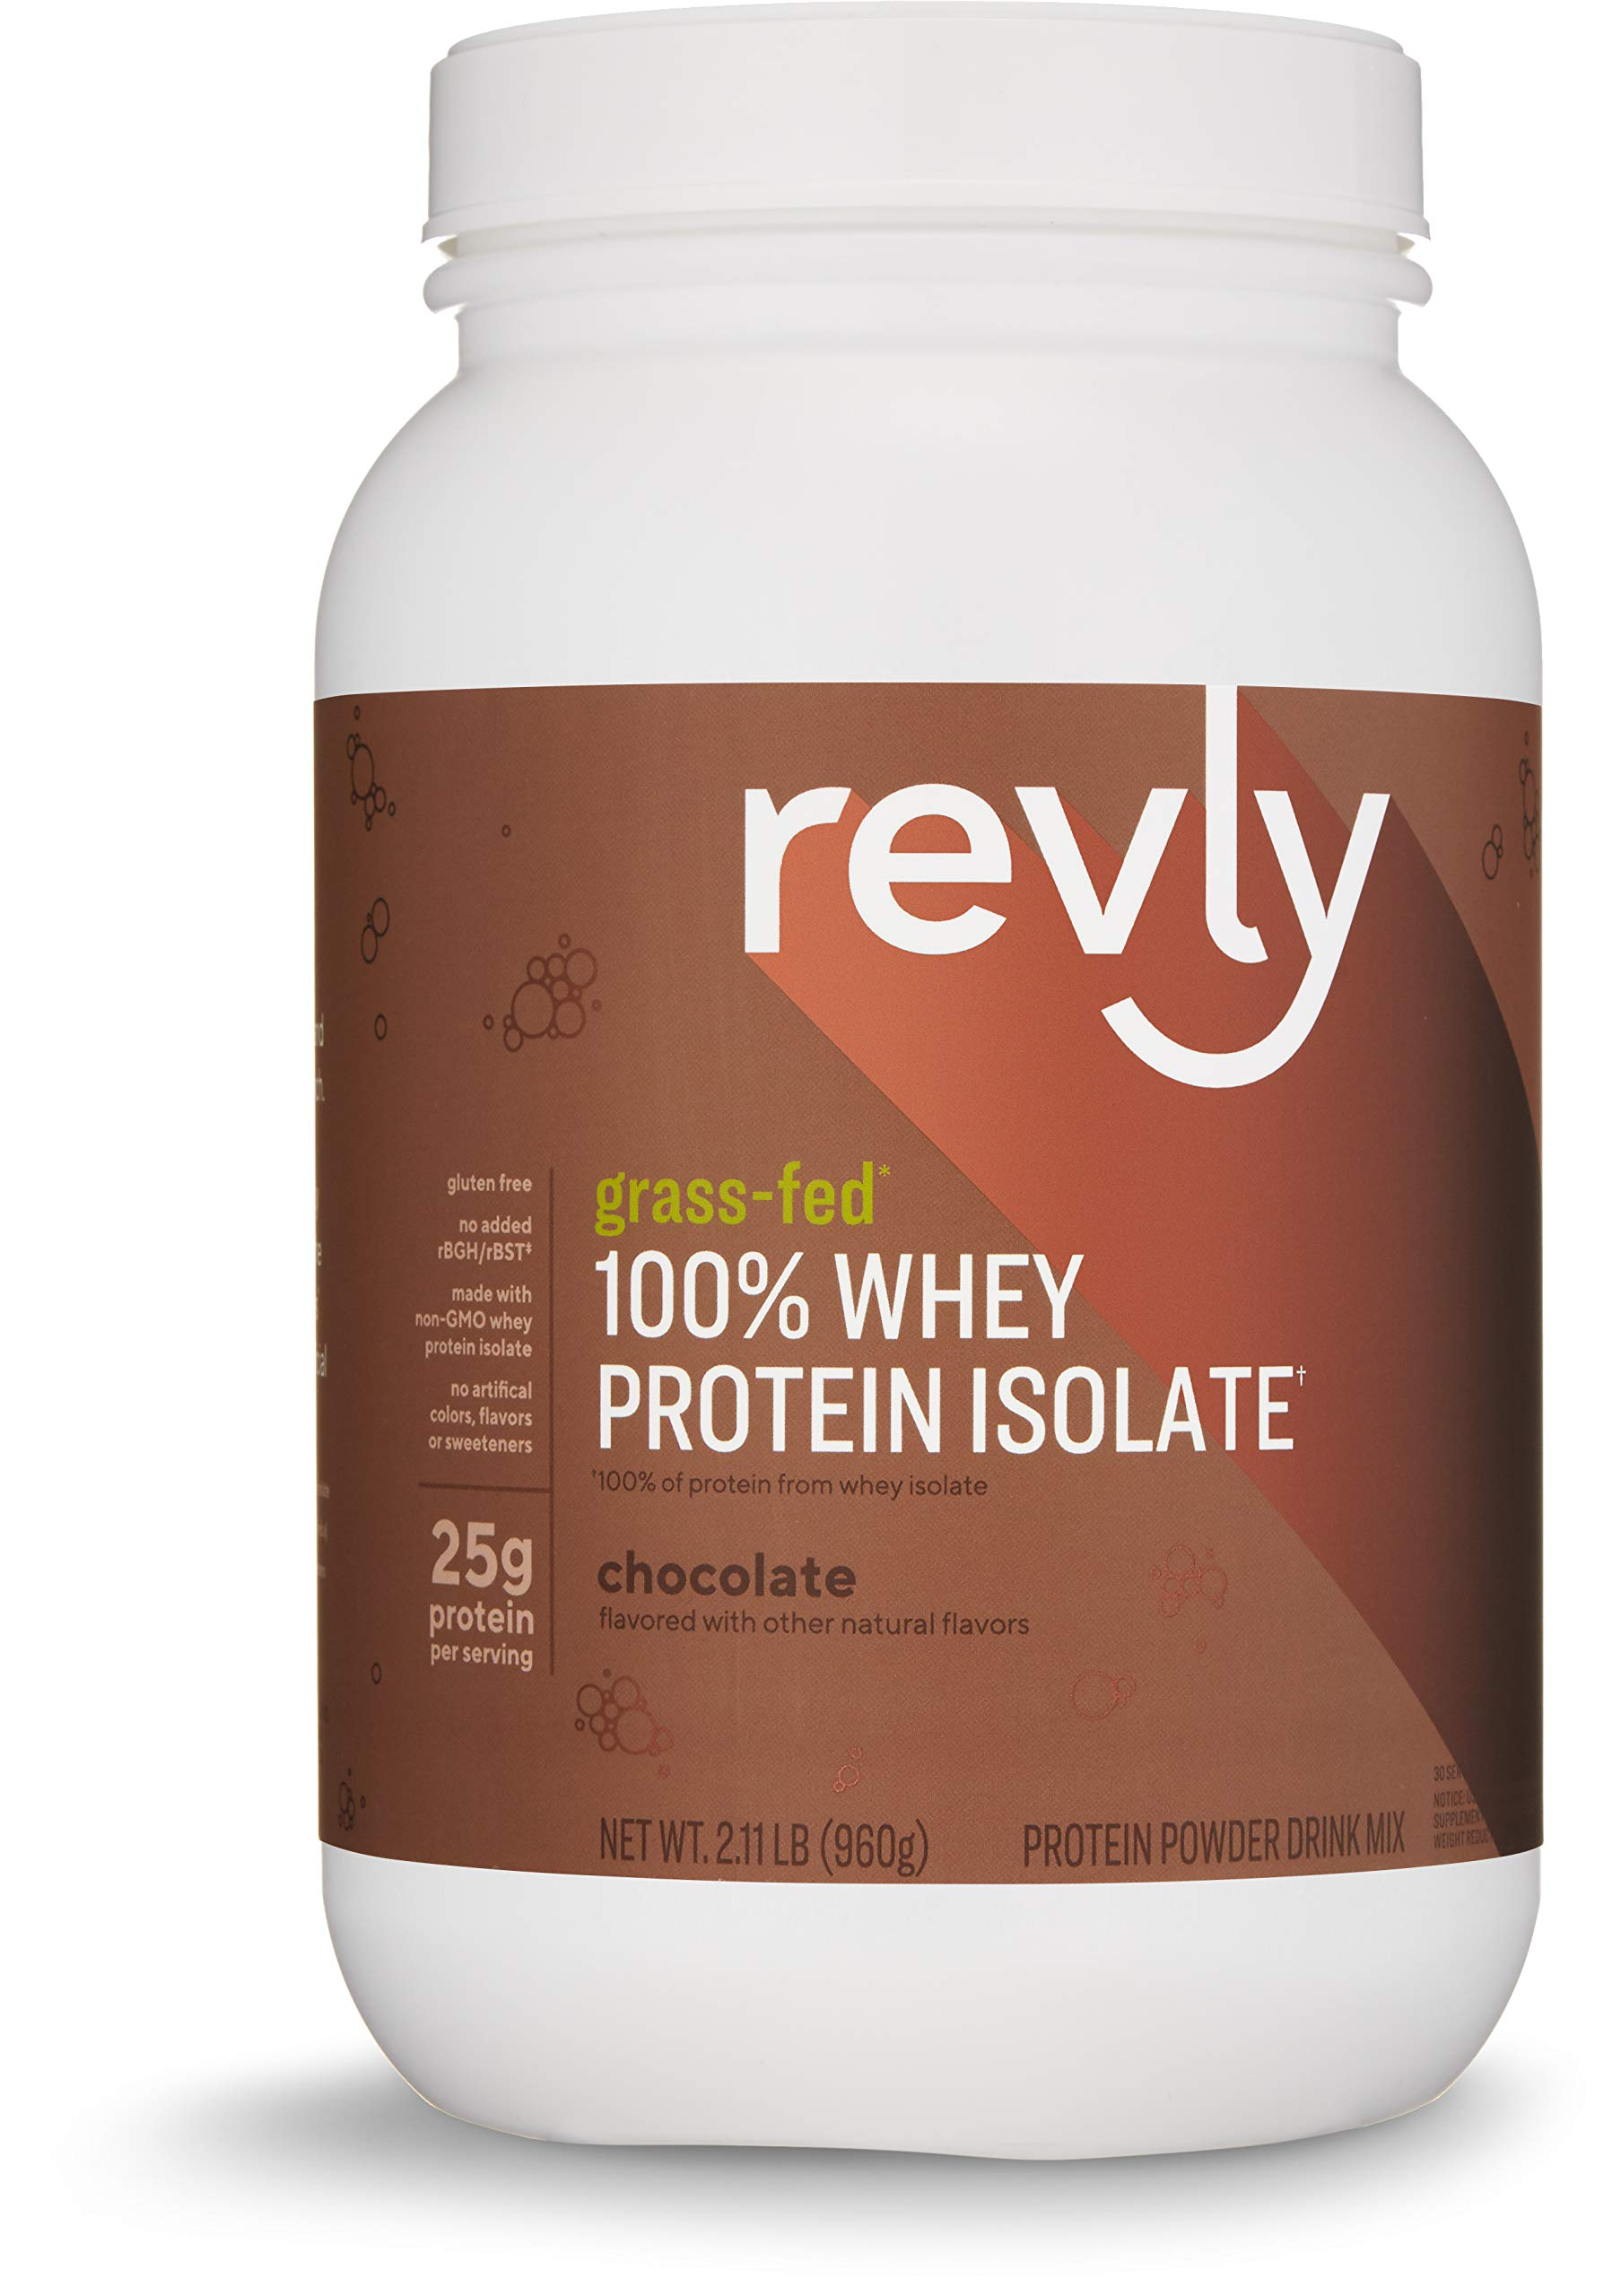 Amazon Brand - Revly 100% Grass-Fed Whey Protein Isolate Powder, Chocolate, 2.11 lbs, 30 Servings, No added rbgh/rbst‡, no artifical colors, flavors, or sweeteners